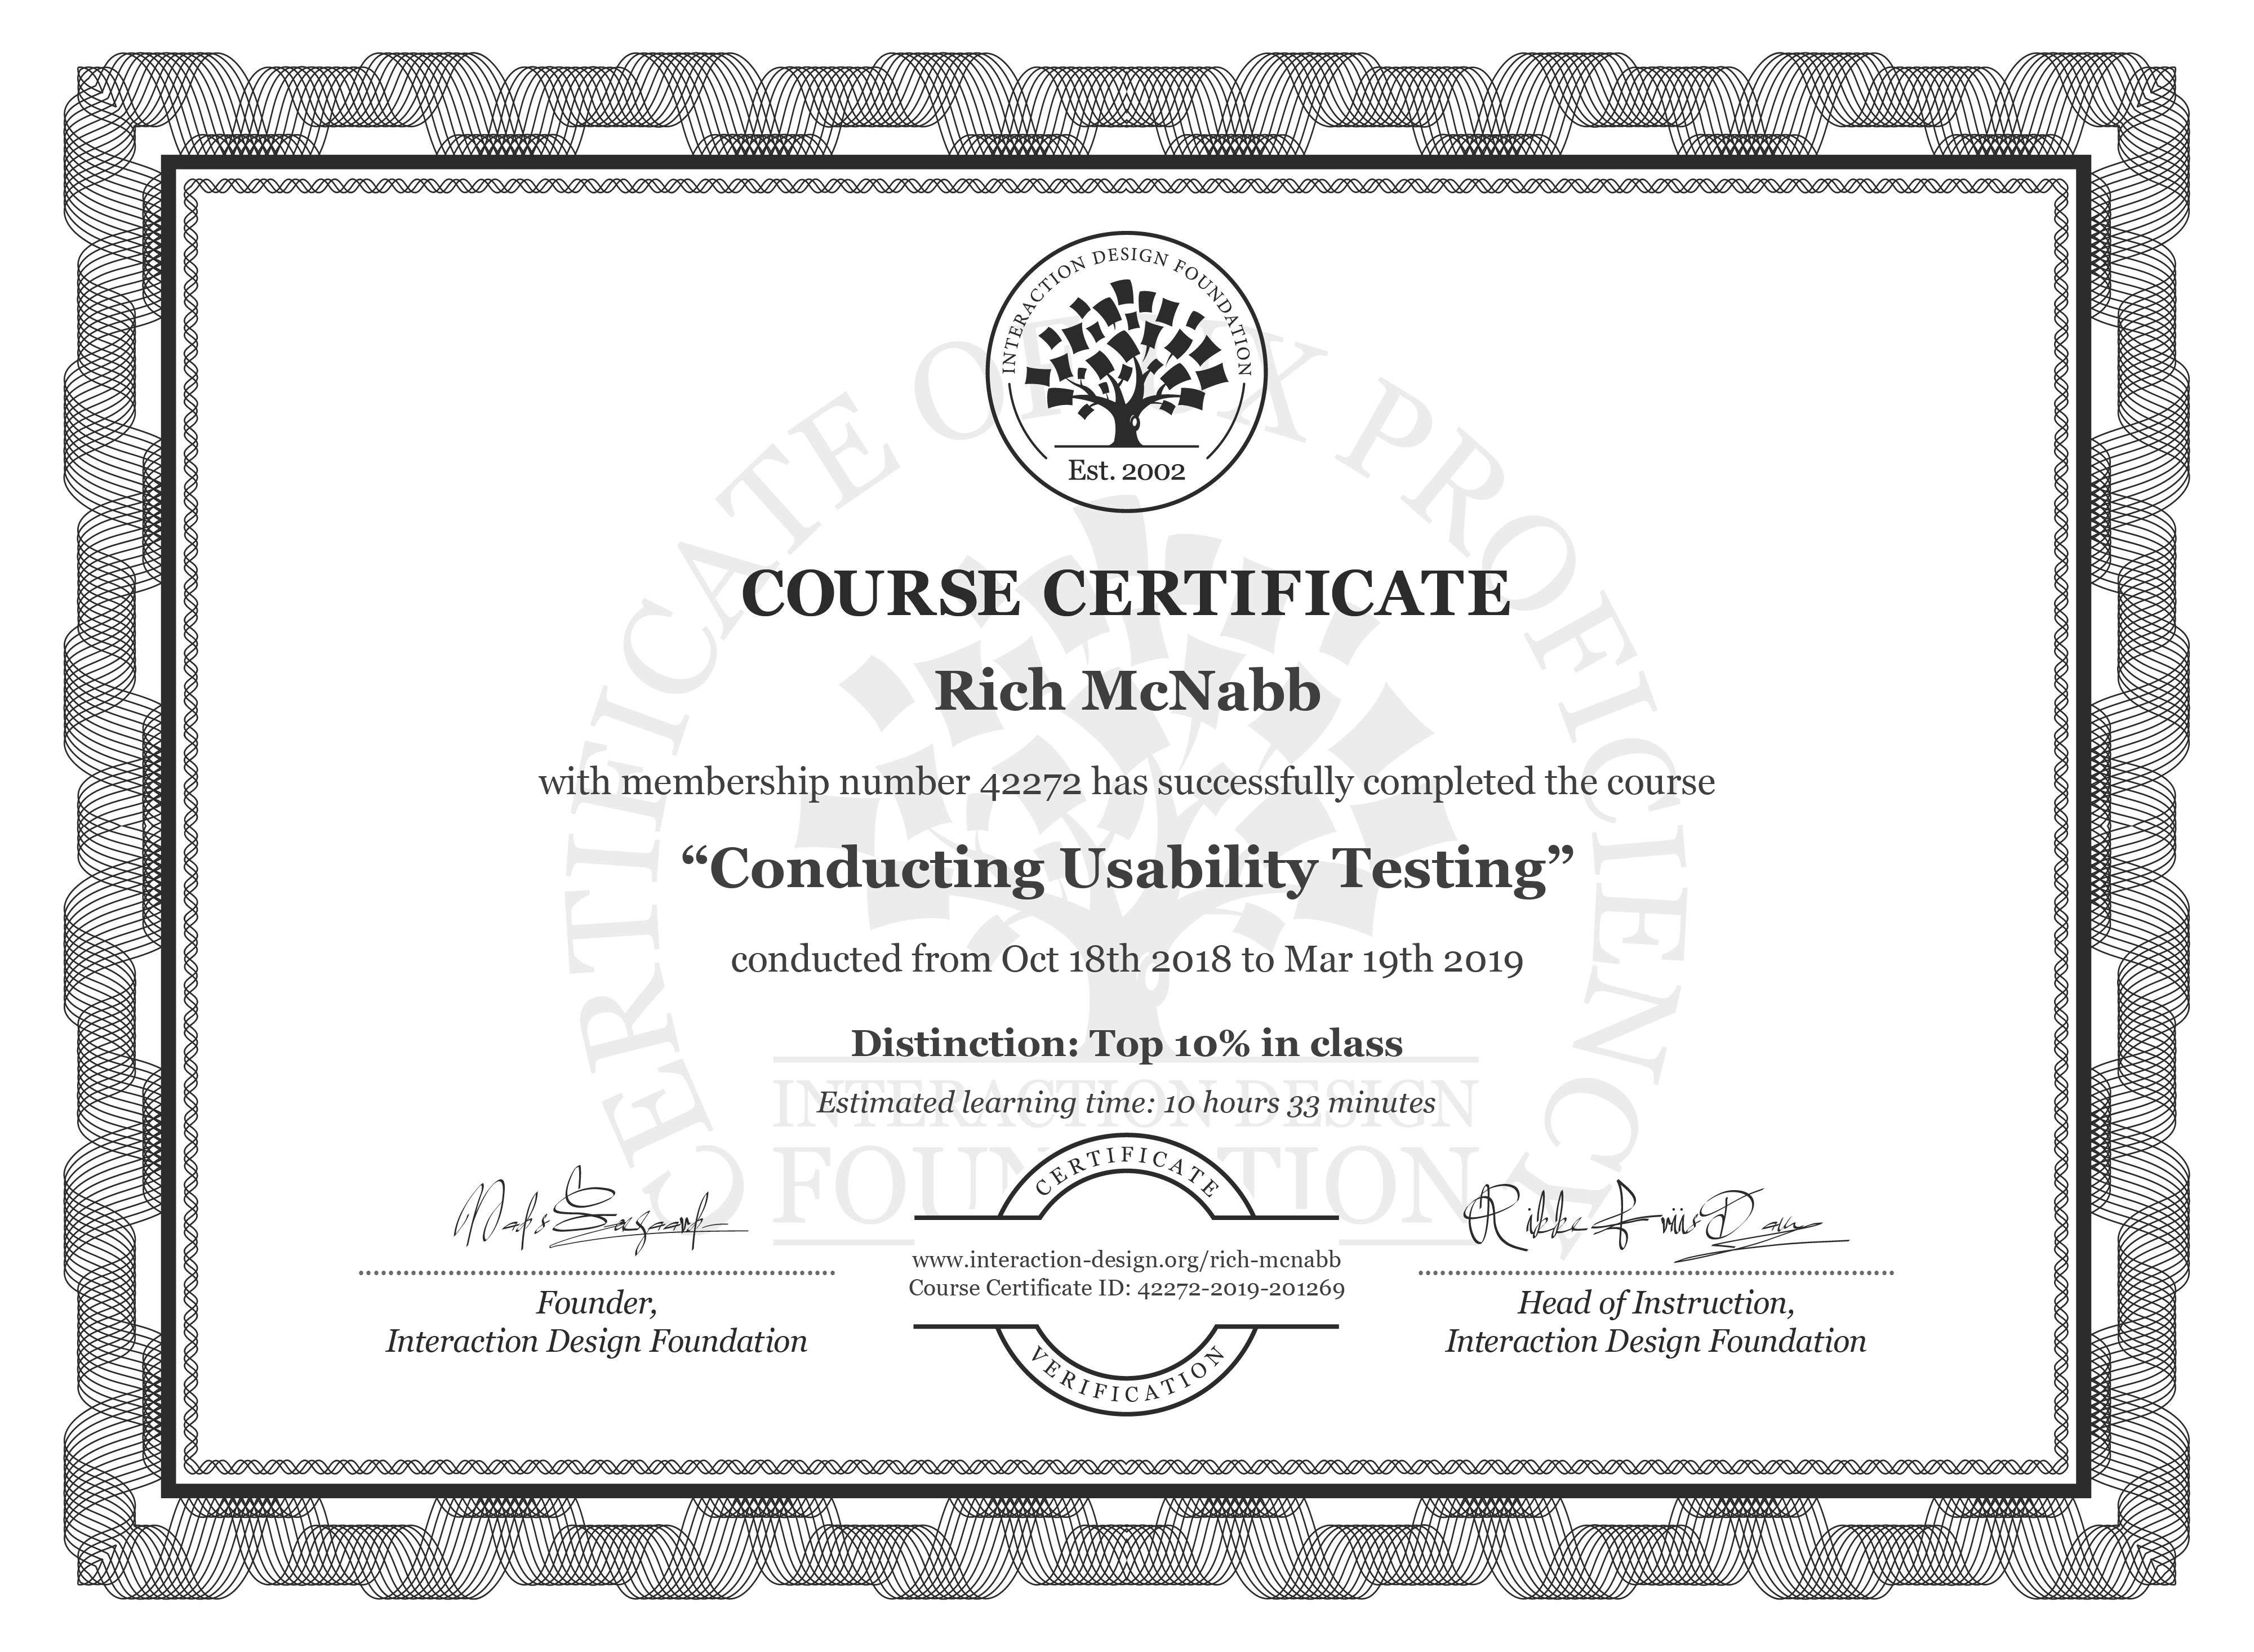 Rich McNabb's Course Certificate: Conducting Usability Testing